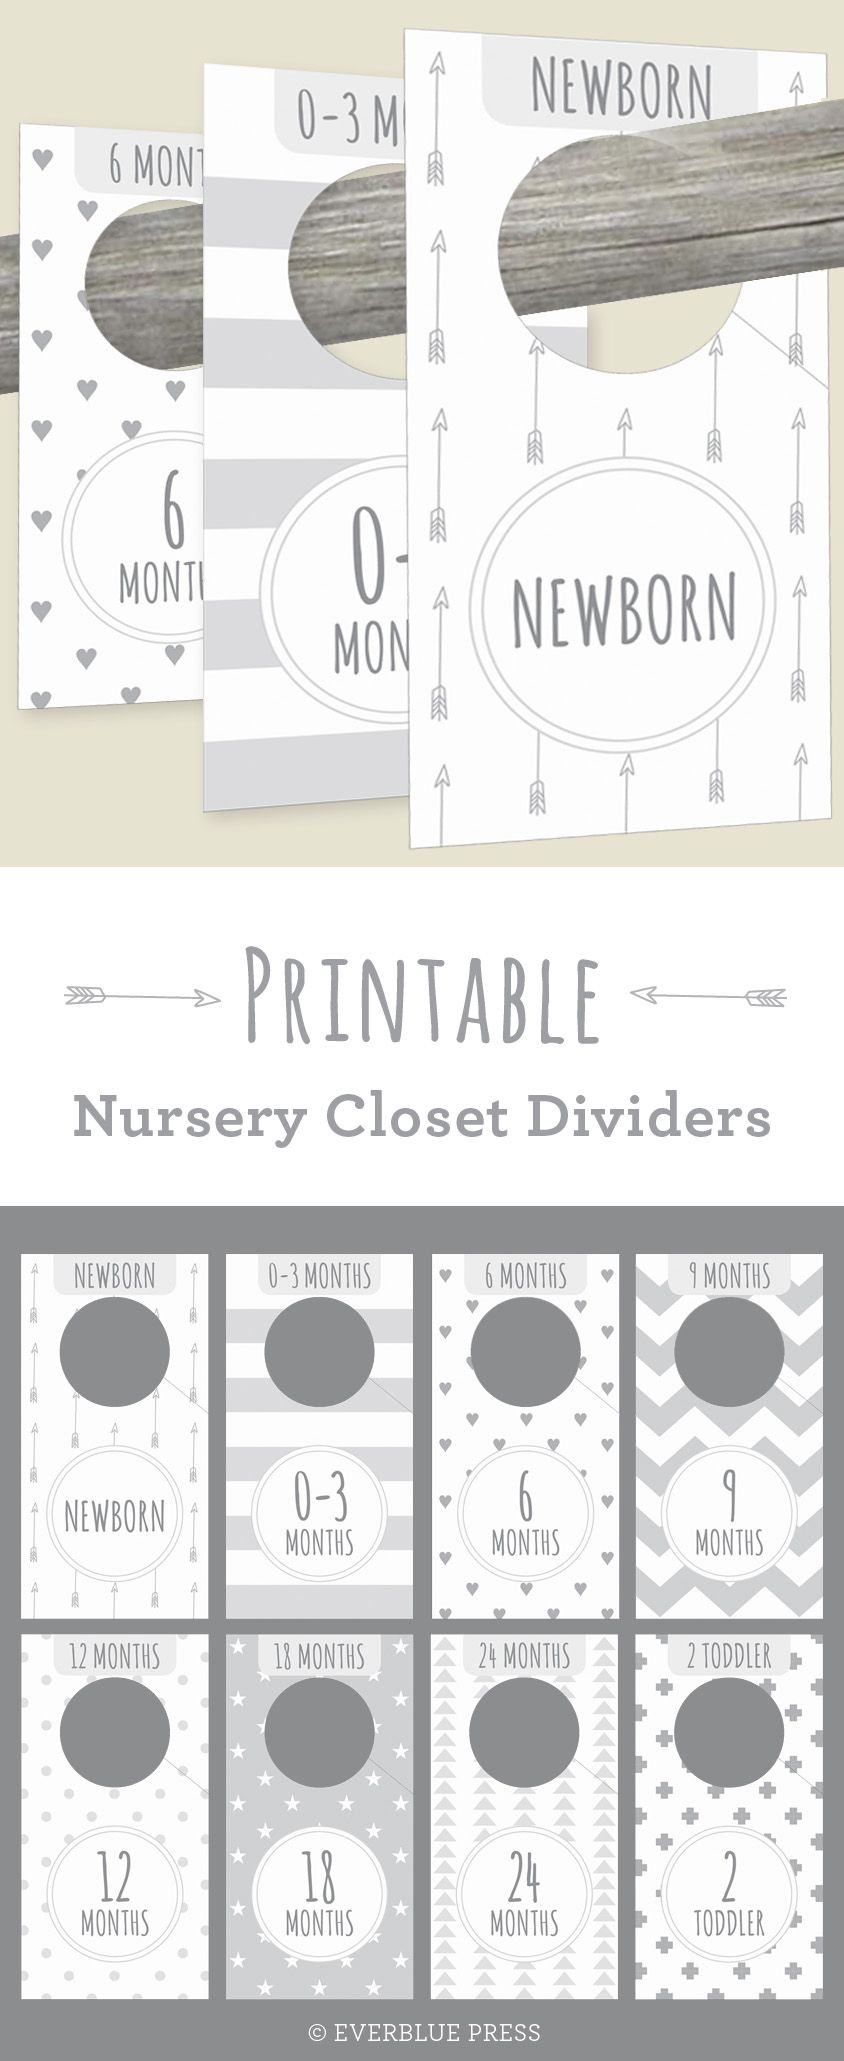 photo relating to Printable Closet Dividers identify Printable Nursery Closet Dividers, 8 in just preset- PDF Quick